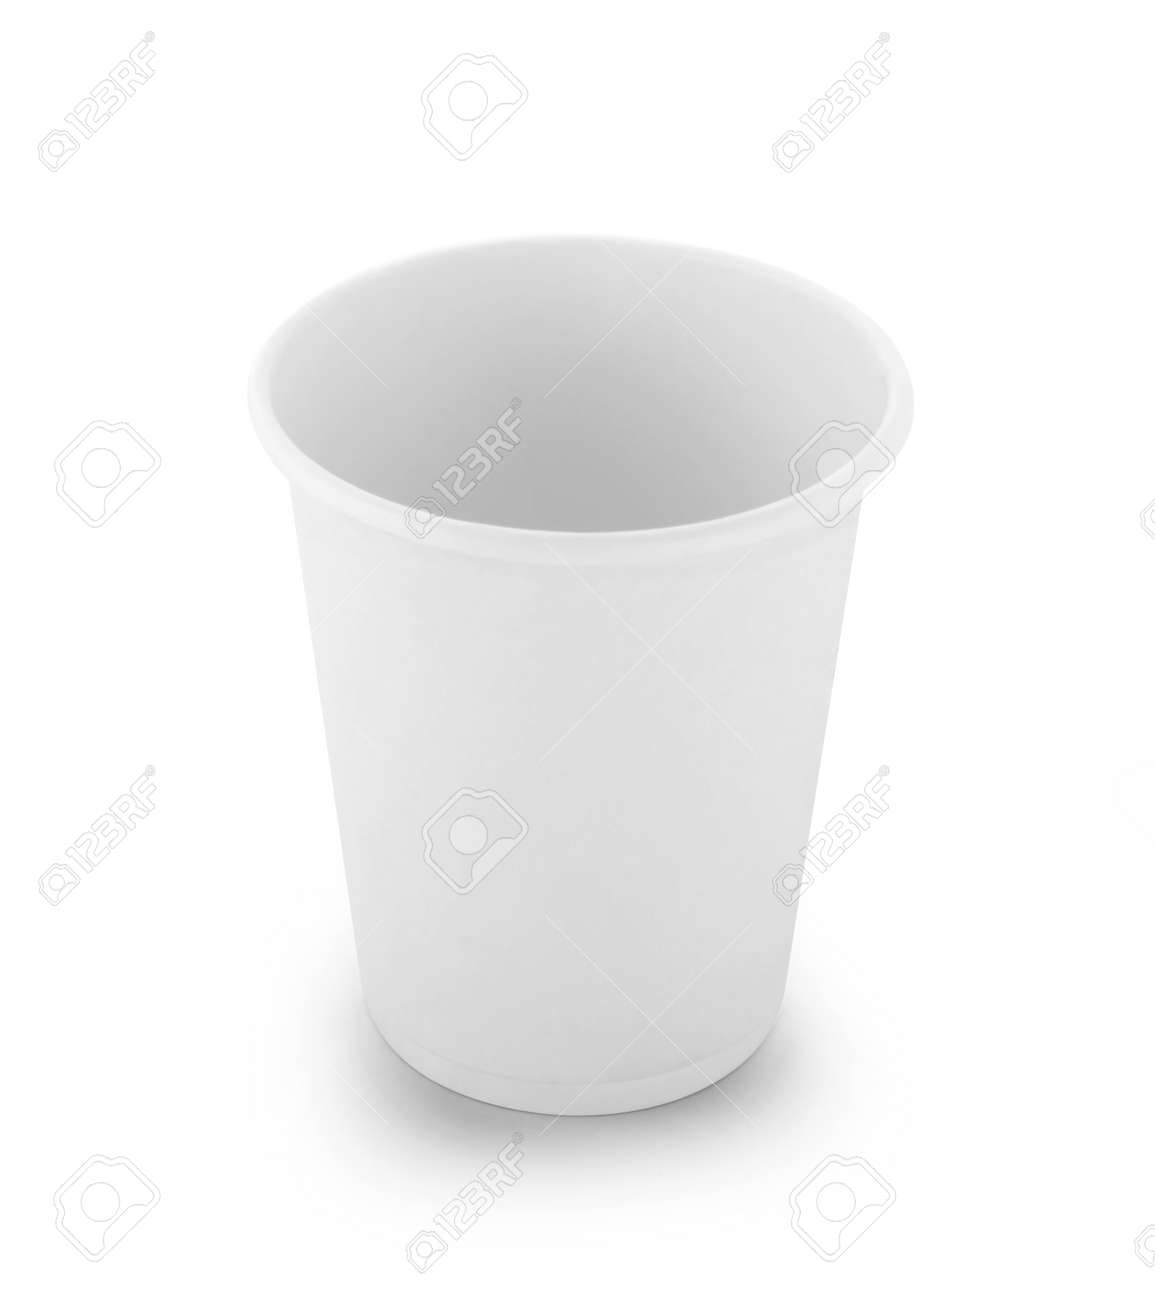 paper cup isolated on white background - 168887903